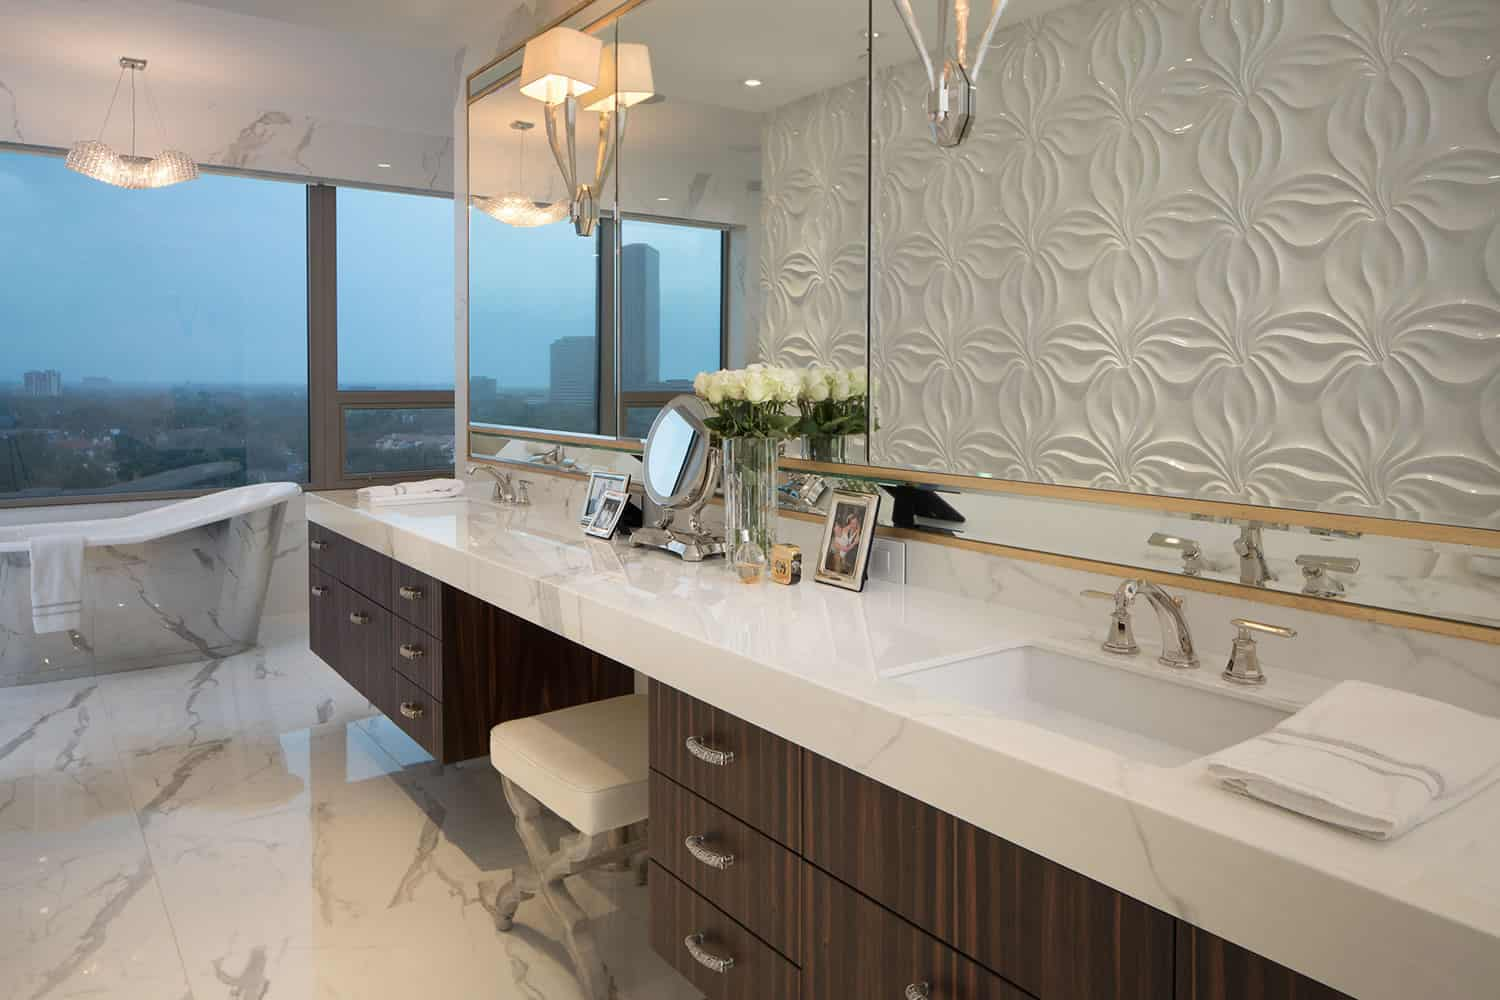 expansive custom double vanity with dressing table in this highrise apartment overlooking the skyline was designed by eggersmann